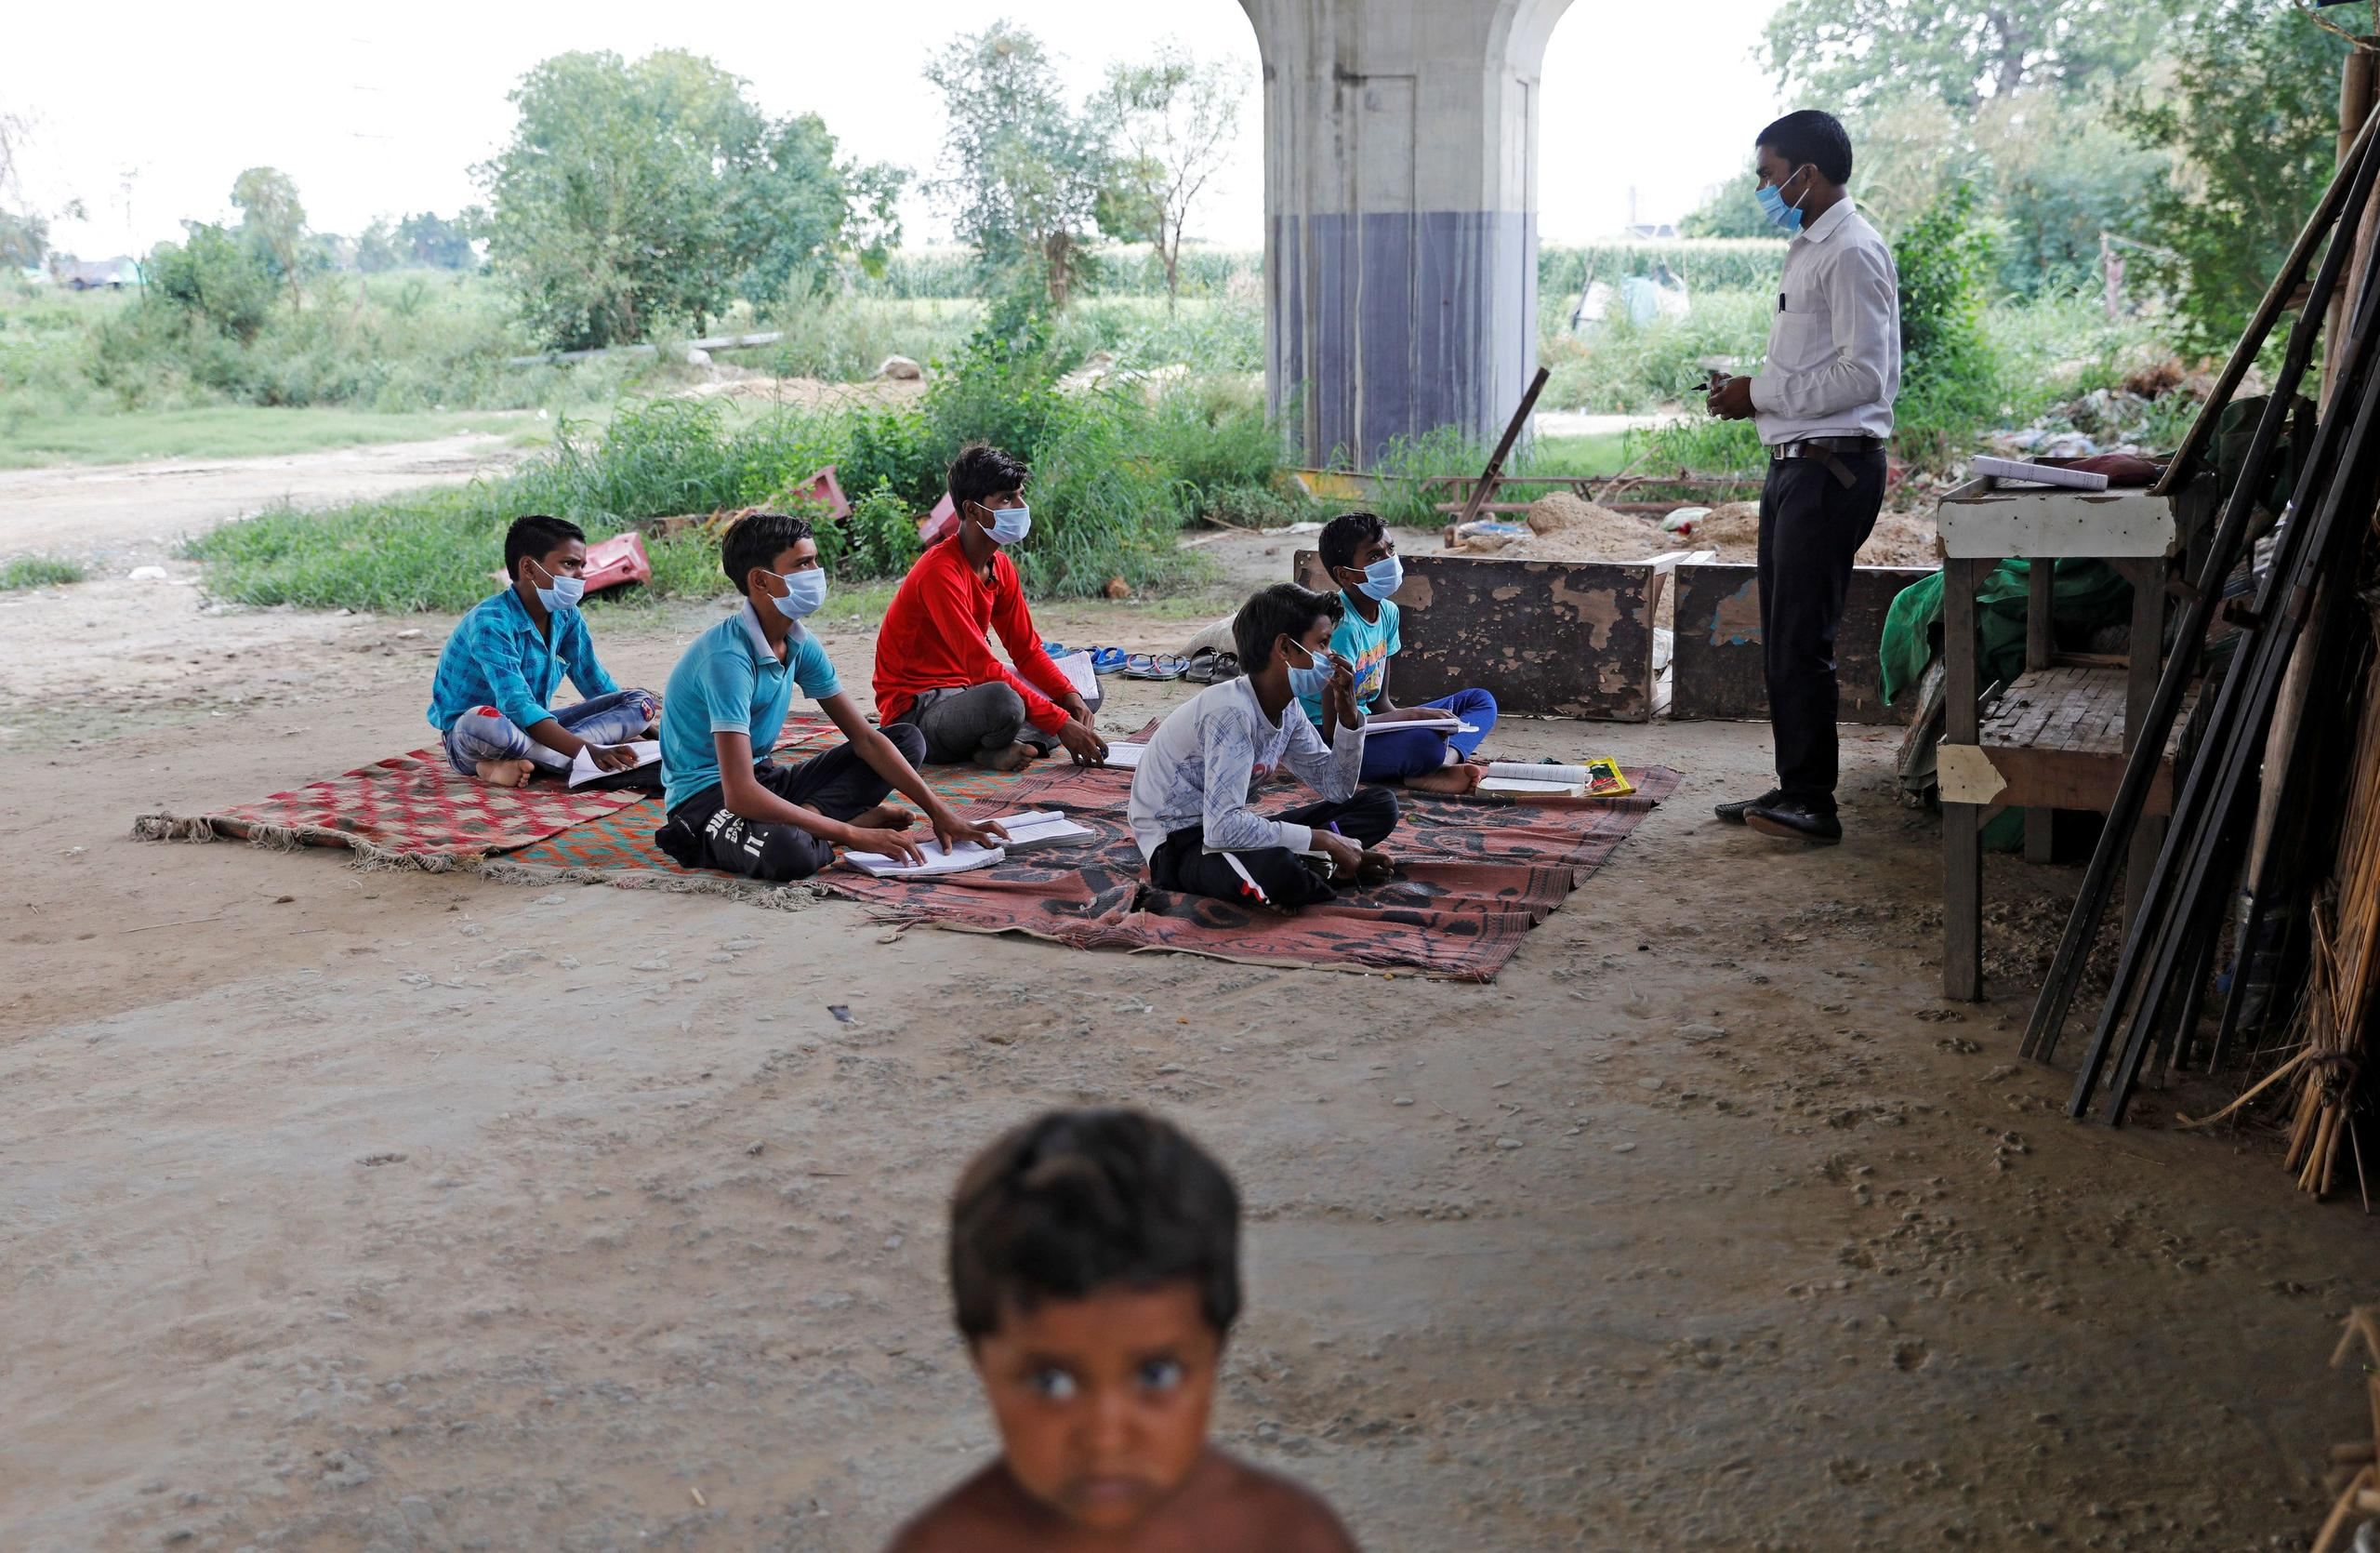 Satyendra Pal, a college student, conducts an open-air class for the students of 9th class from a slum area, who do not have access to internet facilities and miss their online lessons, after authorities closed all the schools in March following the outbreak of the coronavirus disease (COVID-19), in New Delhi, India, July 8, 2020. REUTERS/Adnan Abidi